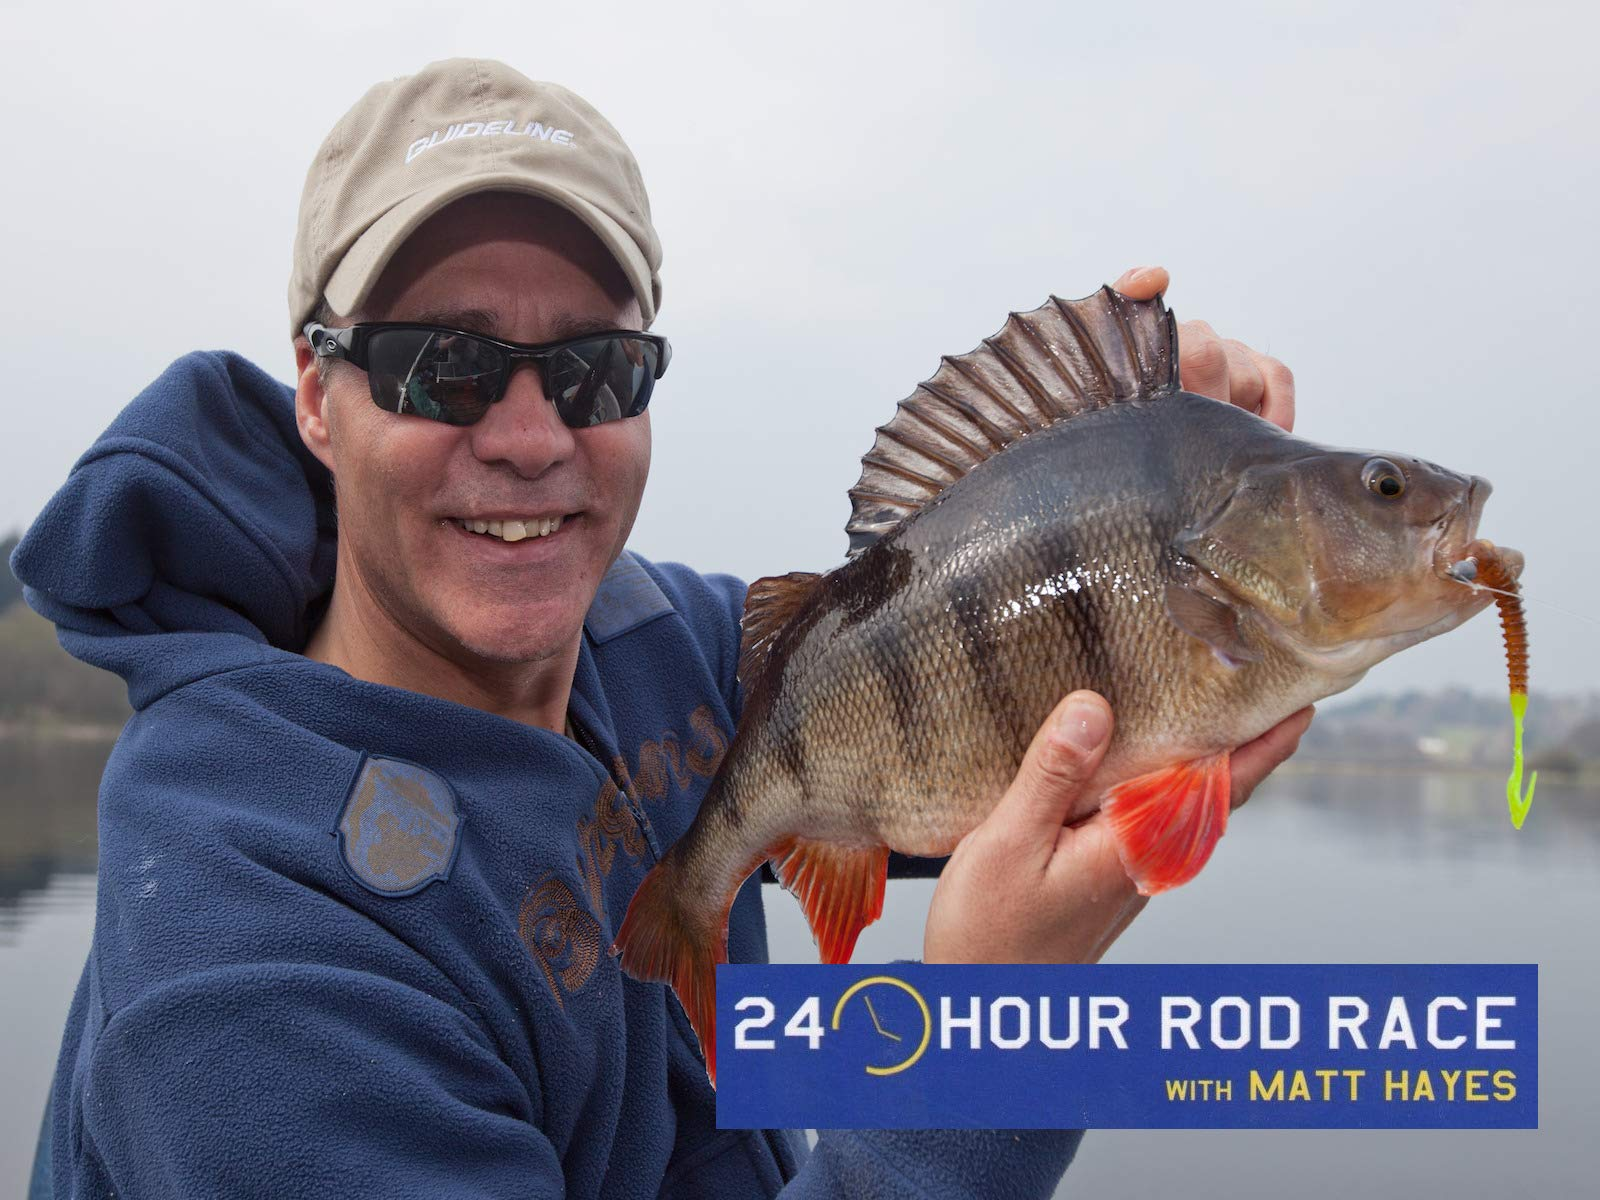 24 Hour Rod Race - Season 1